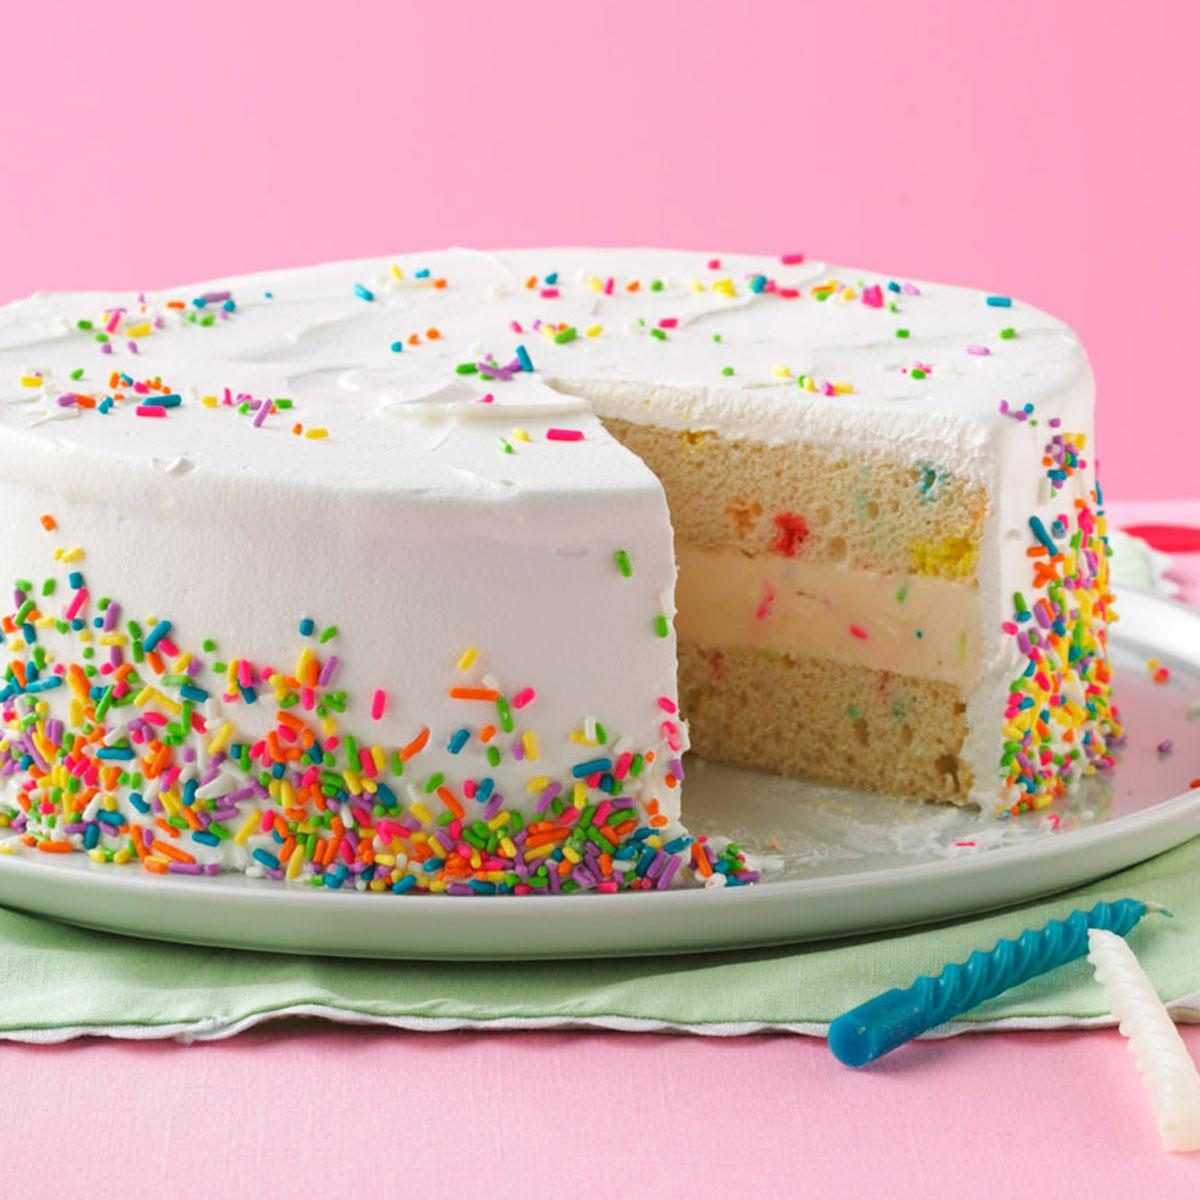 Small Images Of Birthday Cake : Ice Cream Birthday Cake Recipe Taste of Home